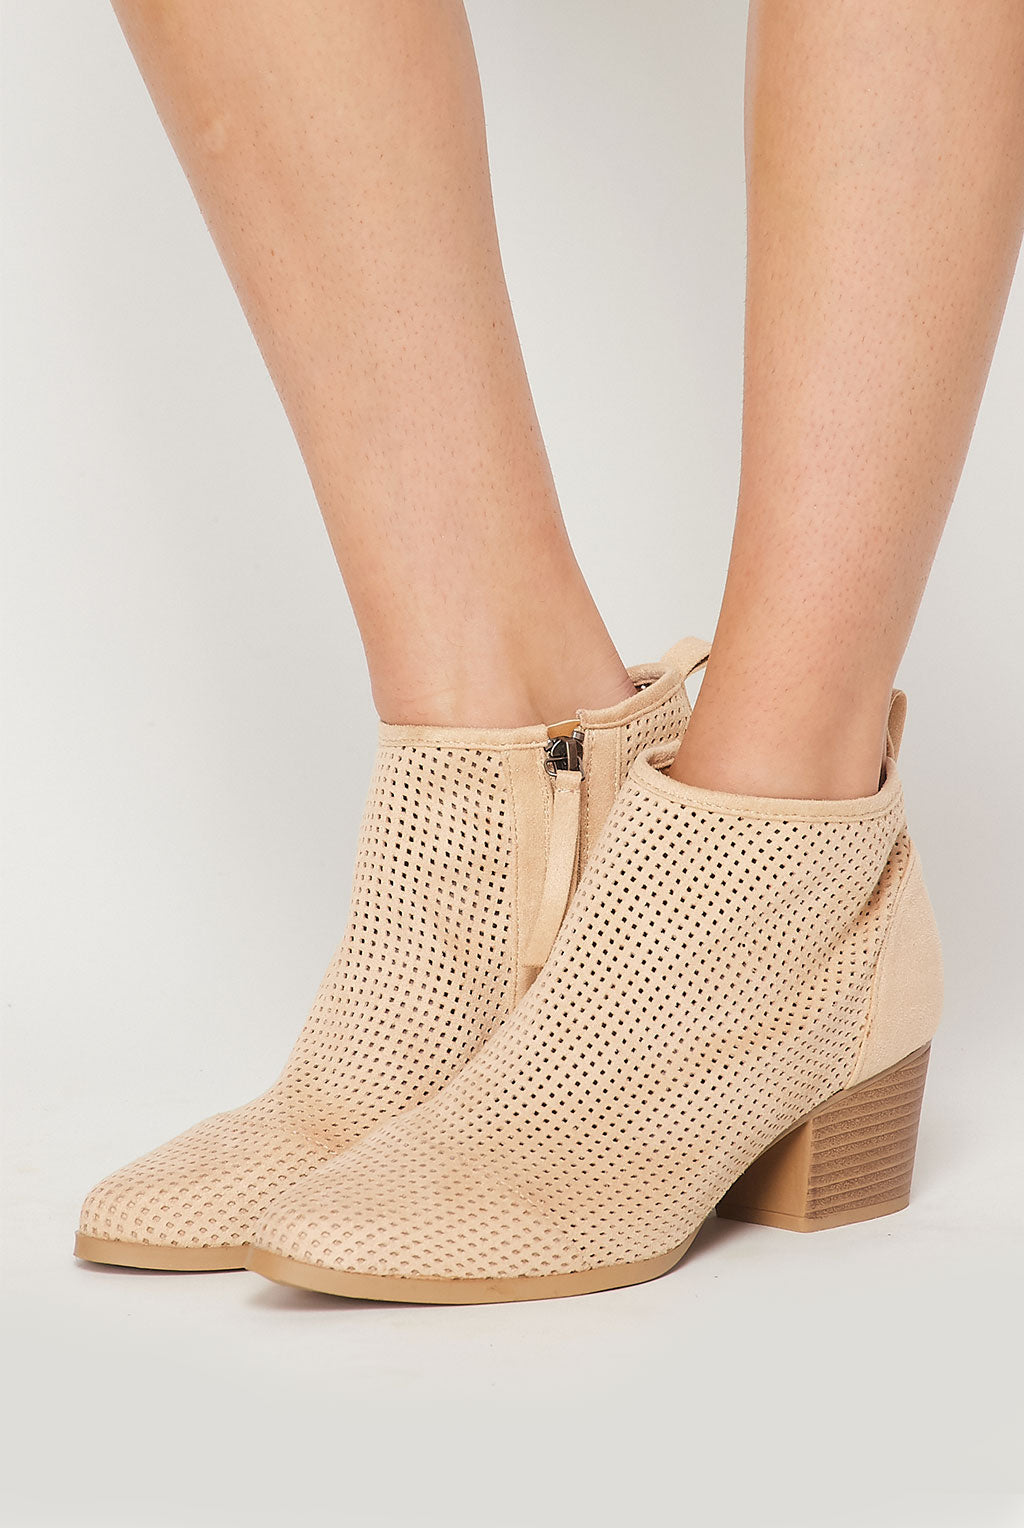 Teeze Me | Perforated Faux Suede Ankle Boot | Toast